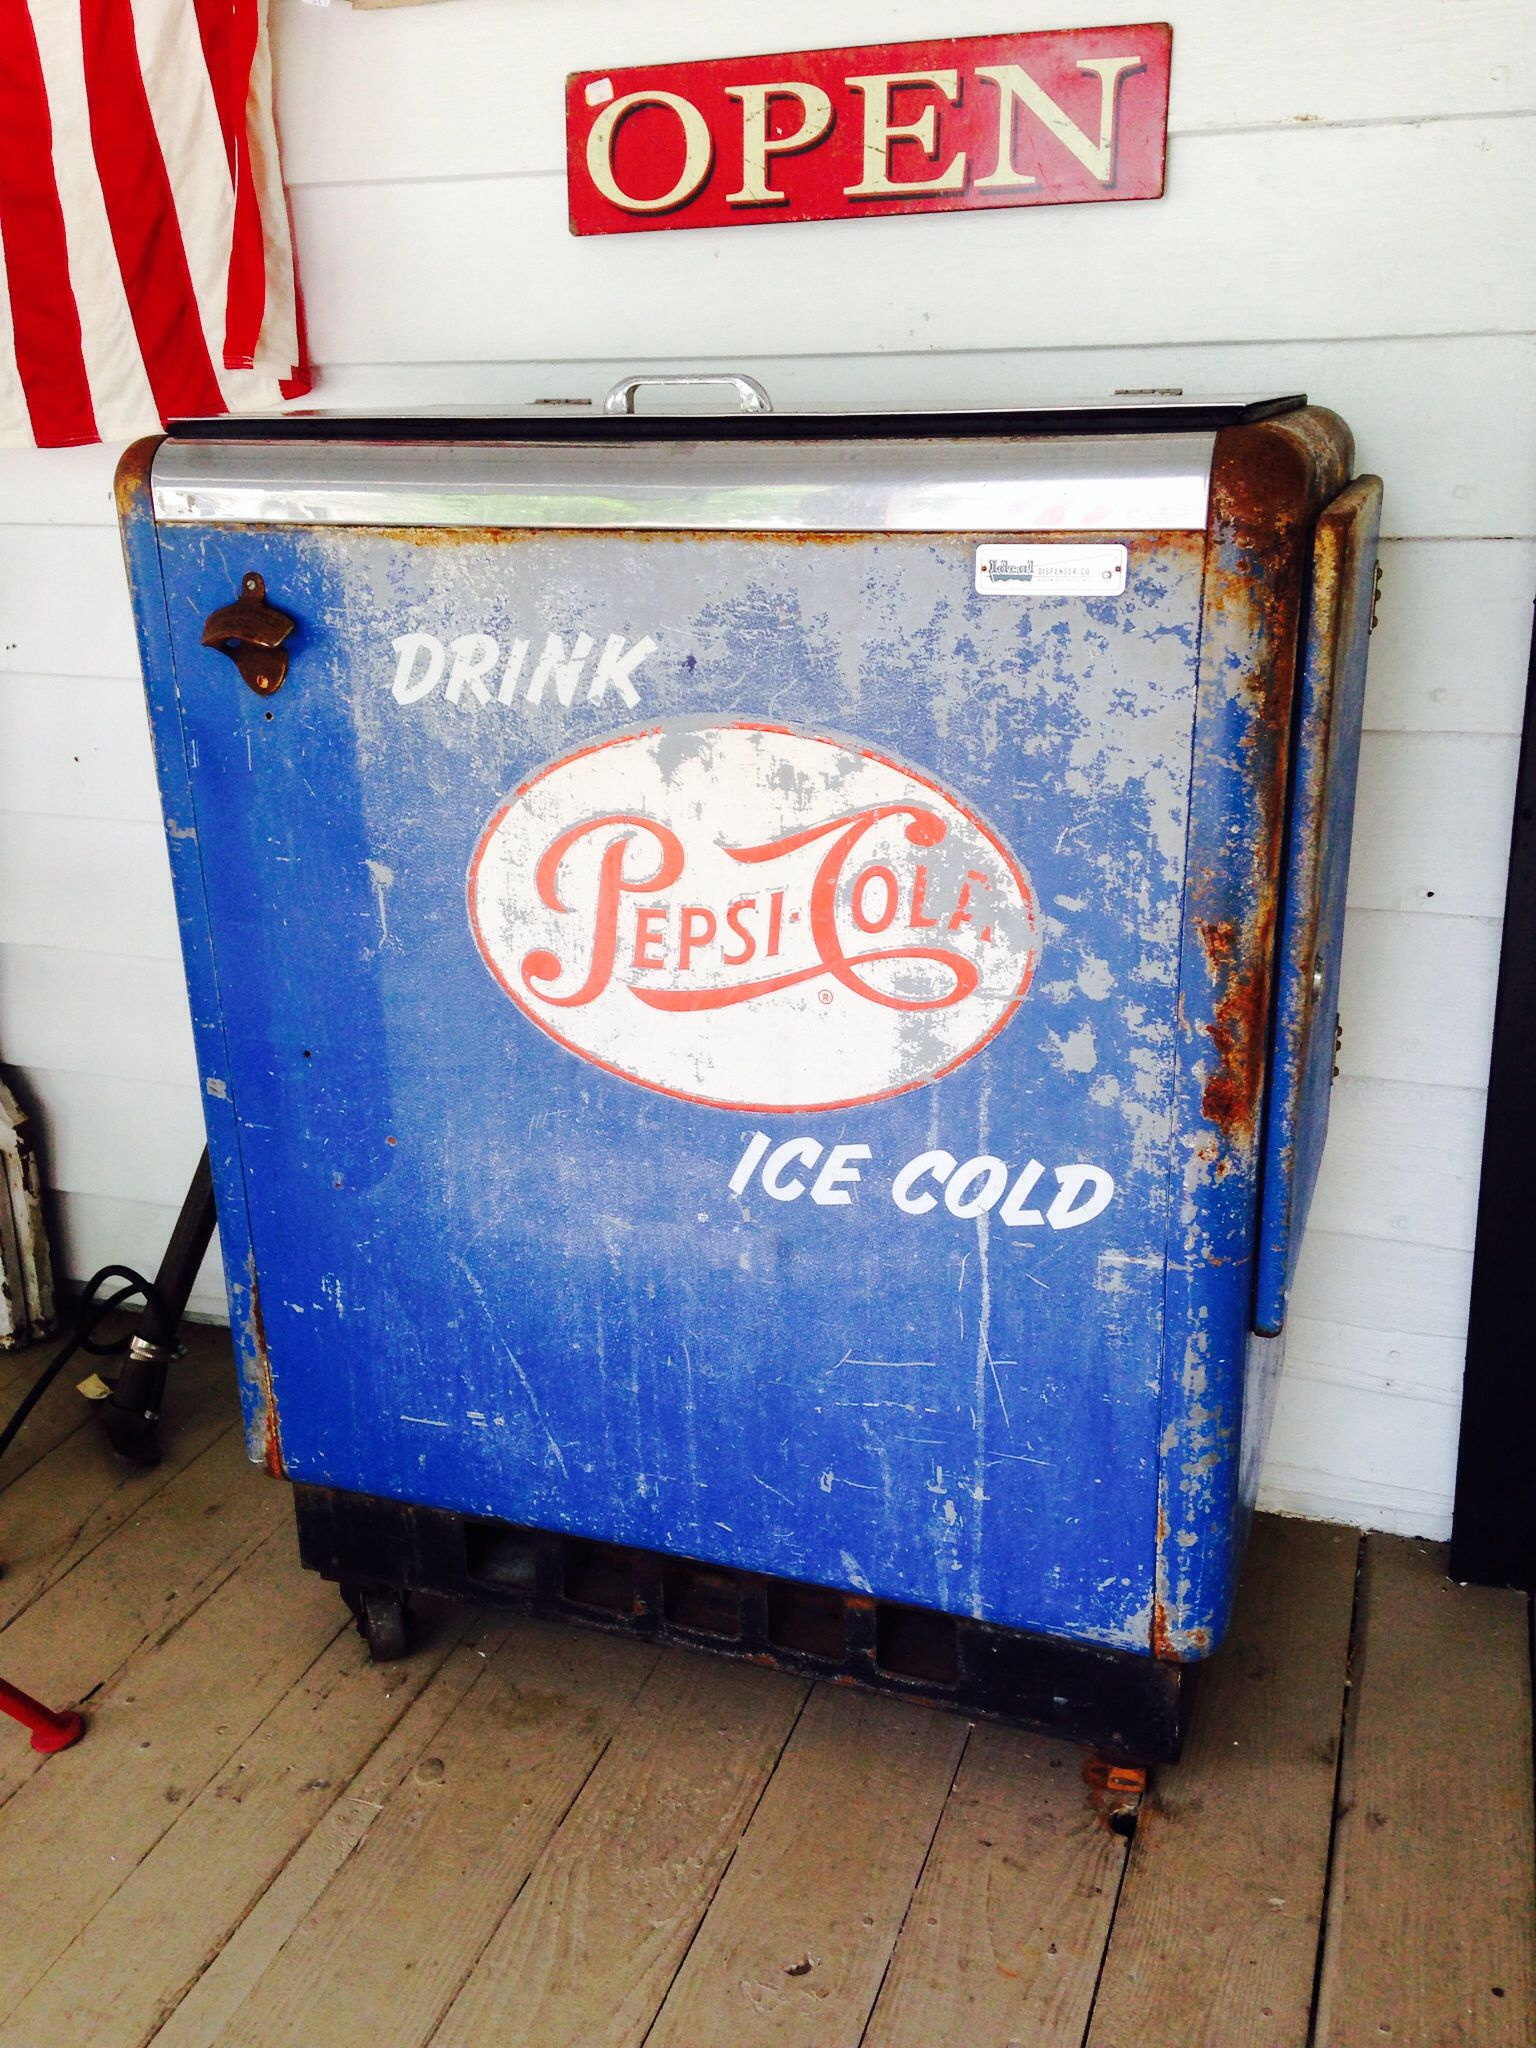 Cool Old Vintage Pepsi Cooler Working Stocked With Cold Bottles Download The Fleatique App On The App Store Soda Pop American Pickers Pepsi Cola Pepsi